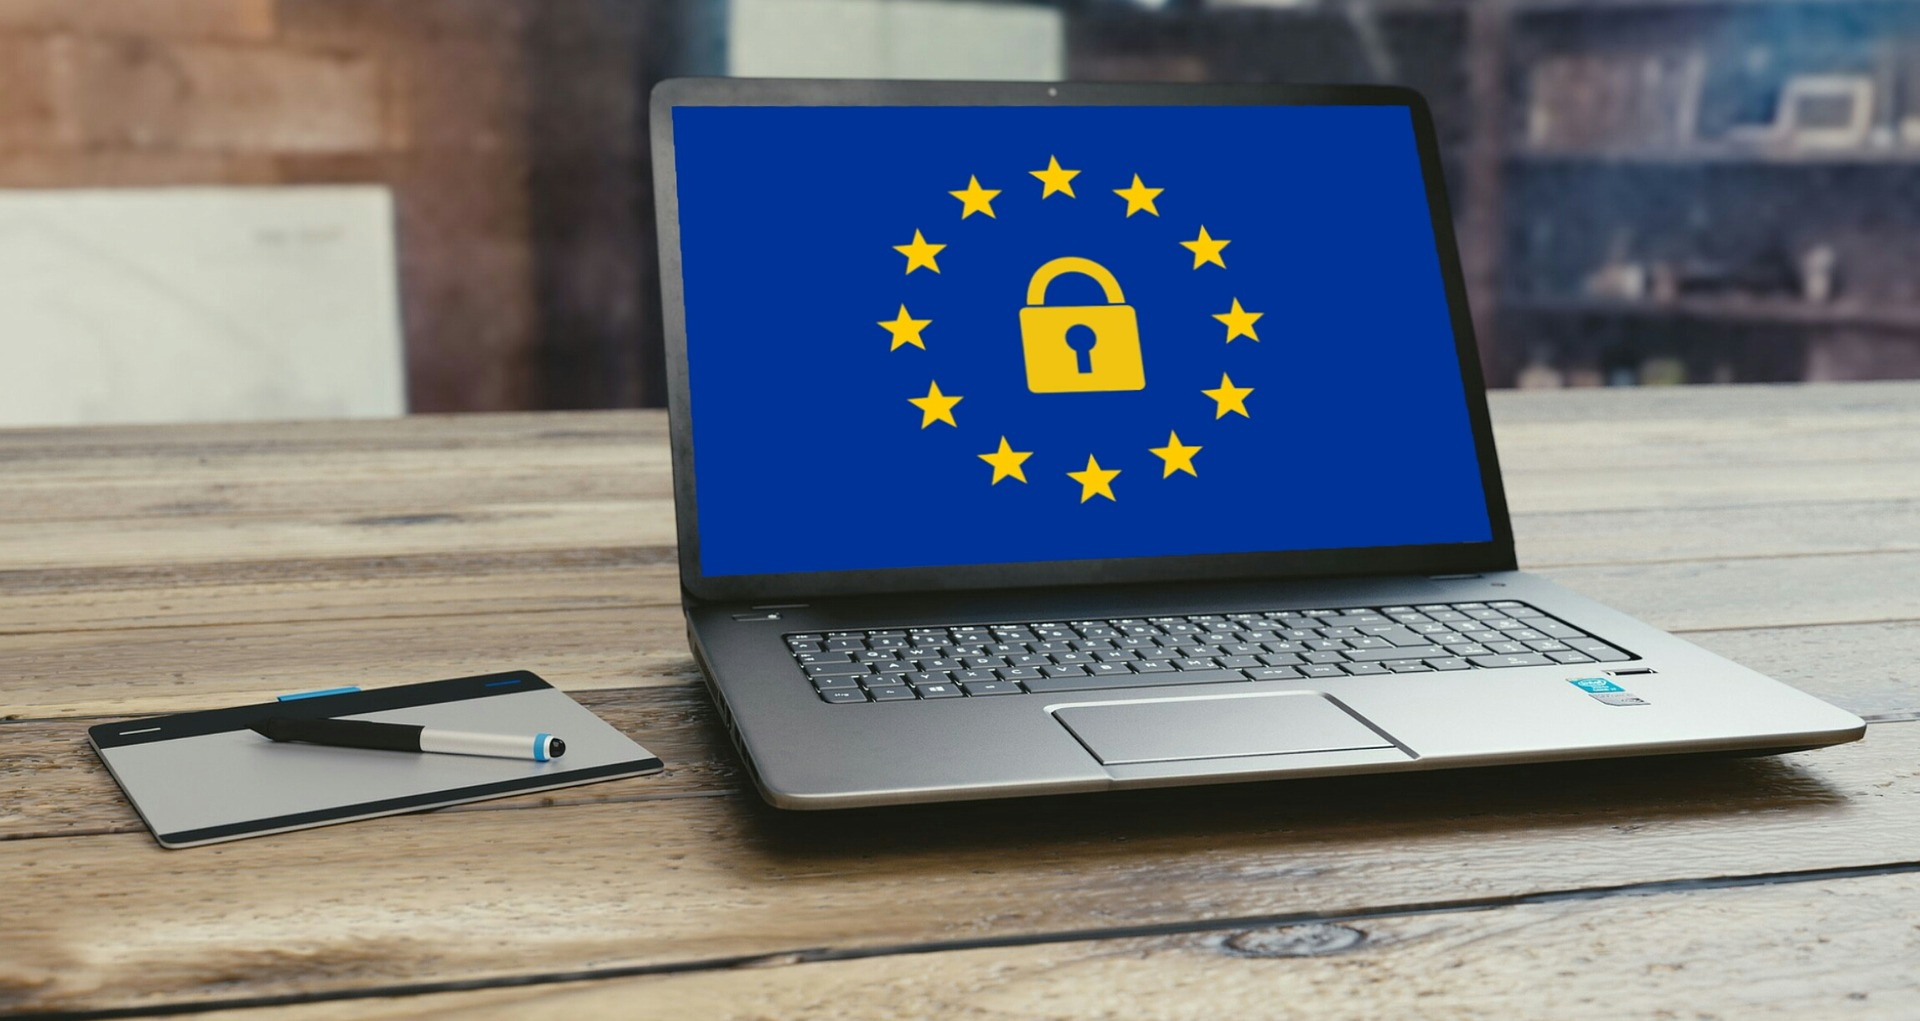 Laptop on desk with GDPR background image